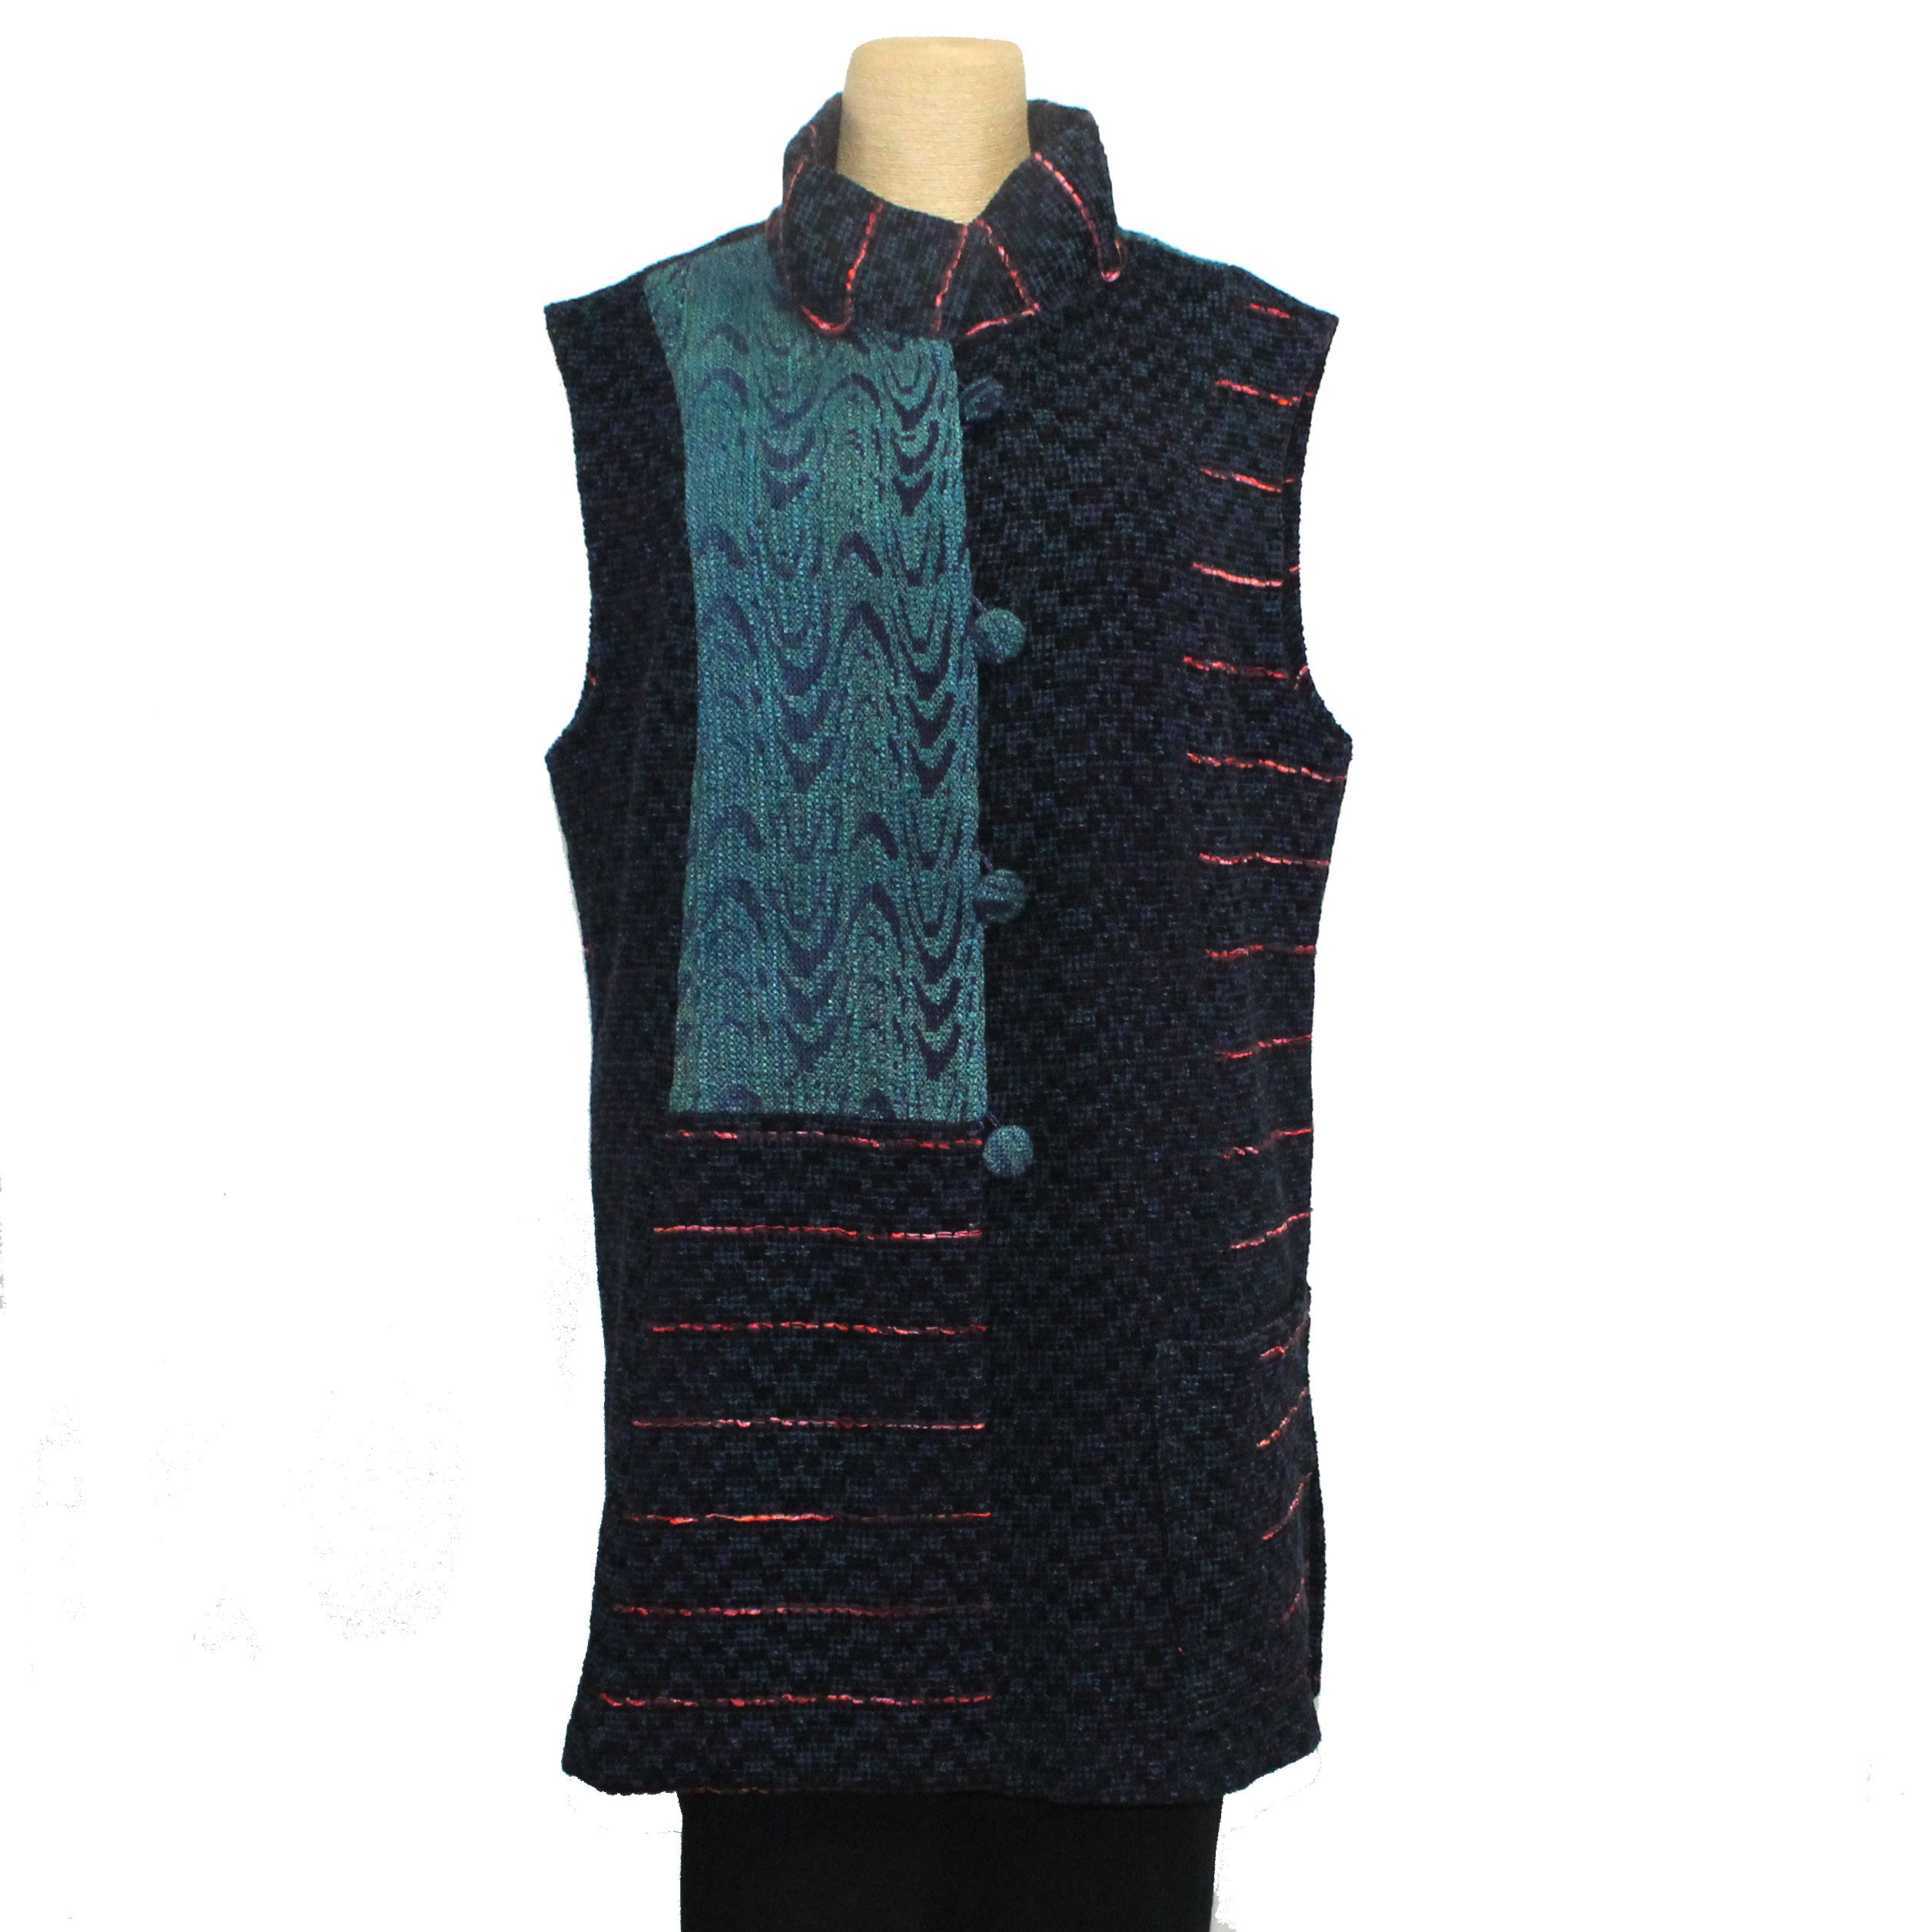 Joyce Wilkerson Vest, City Lights, Indigo/Red Stripe, S/M